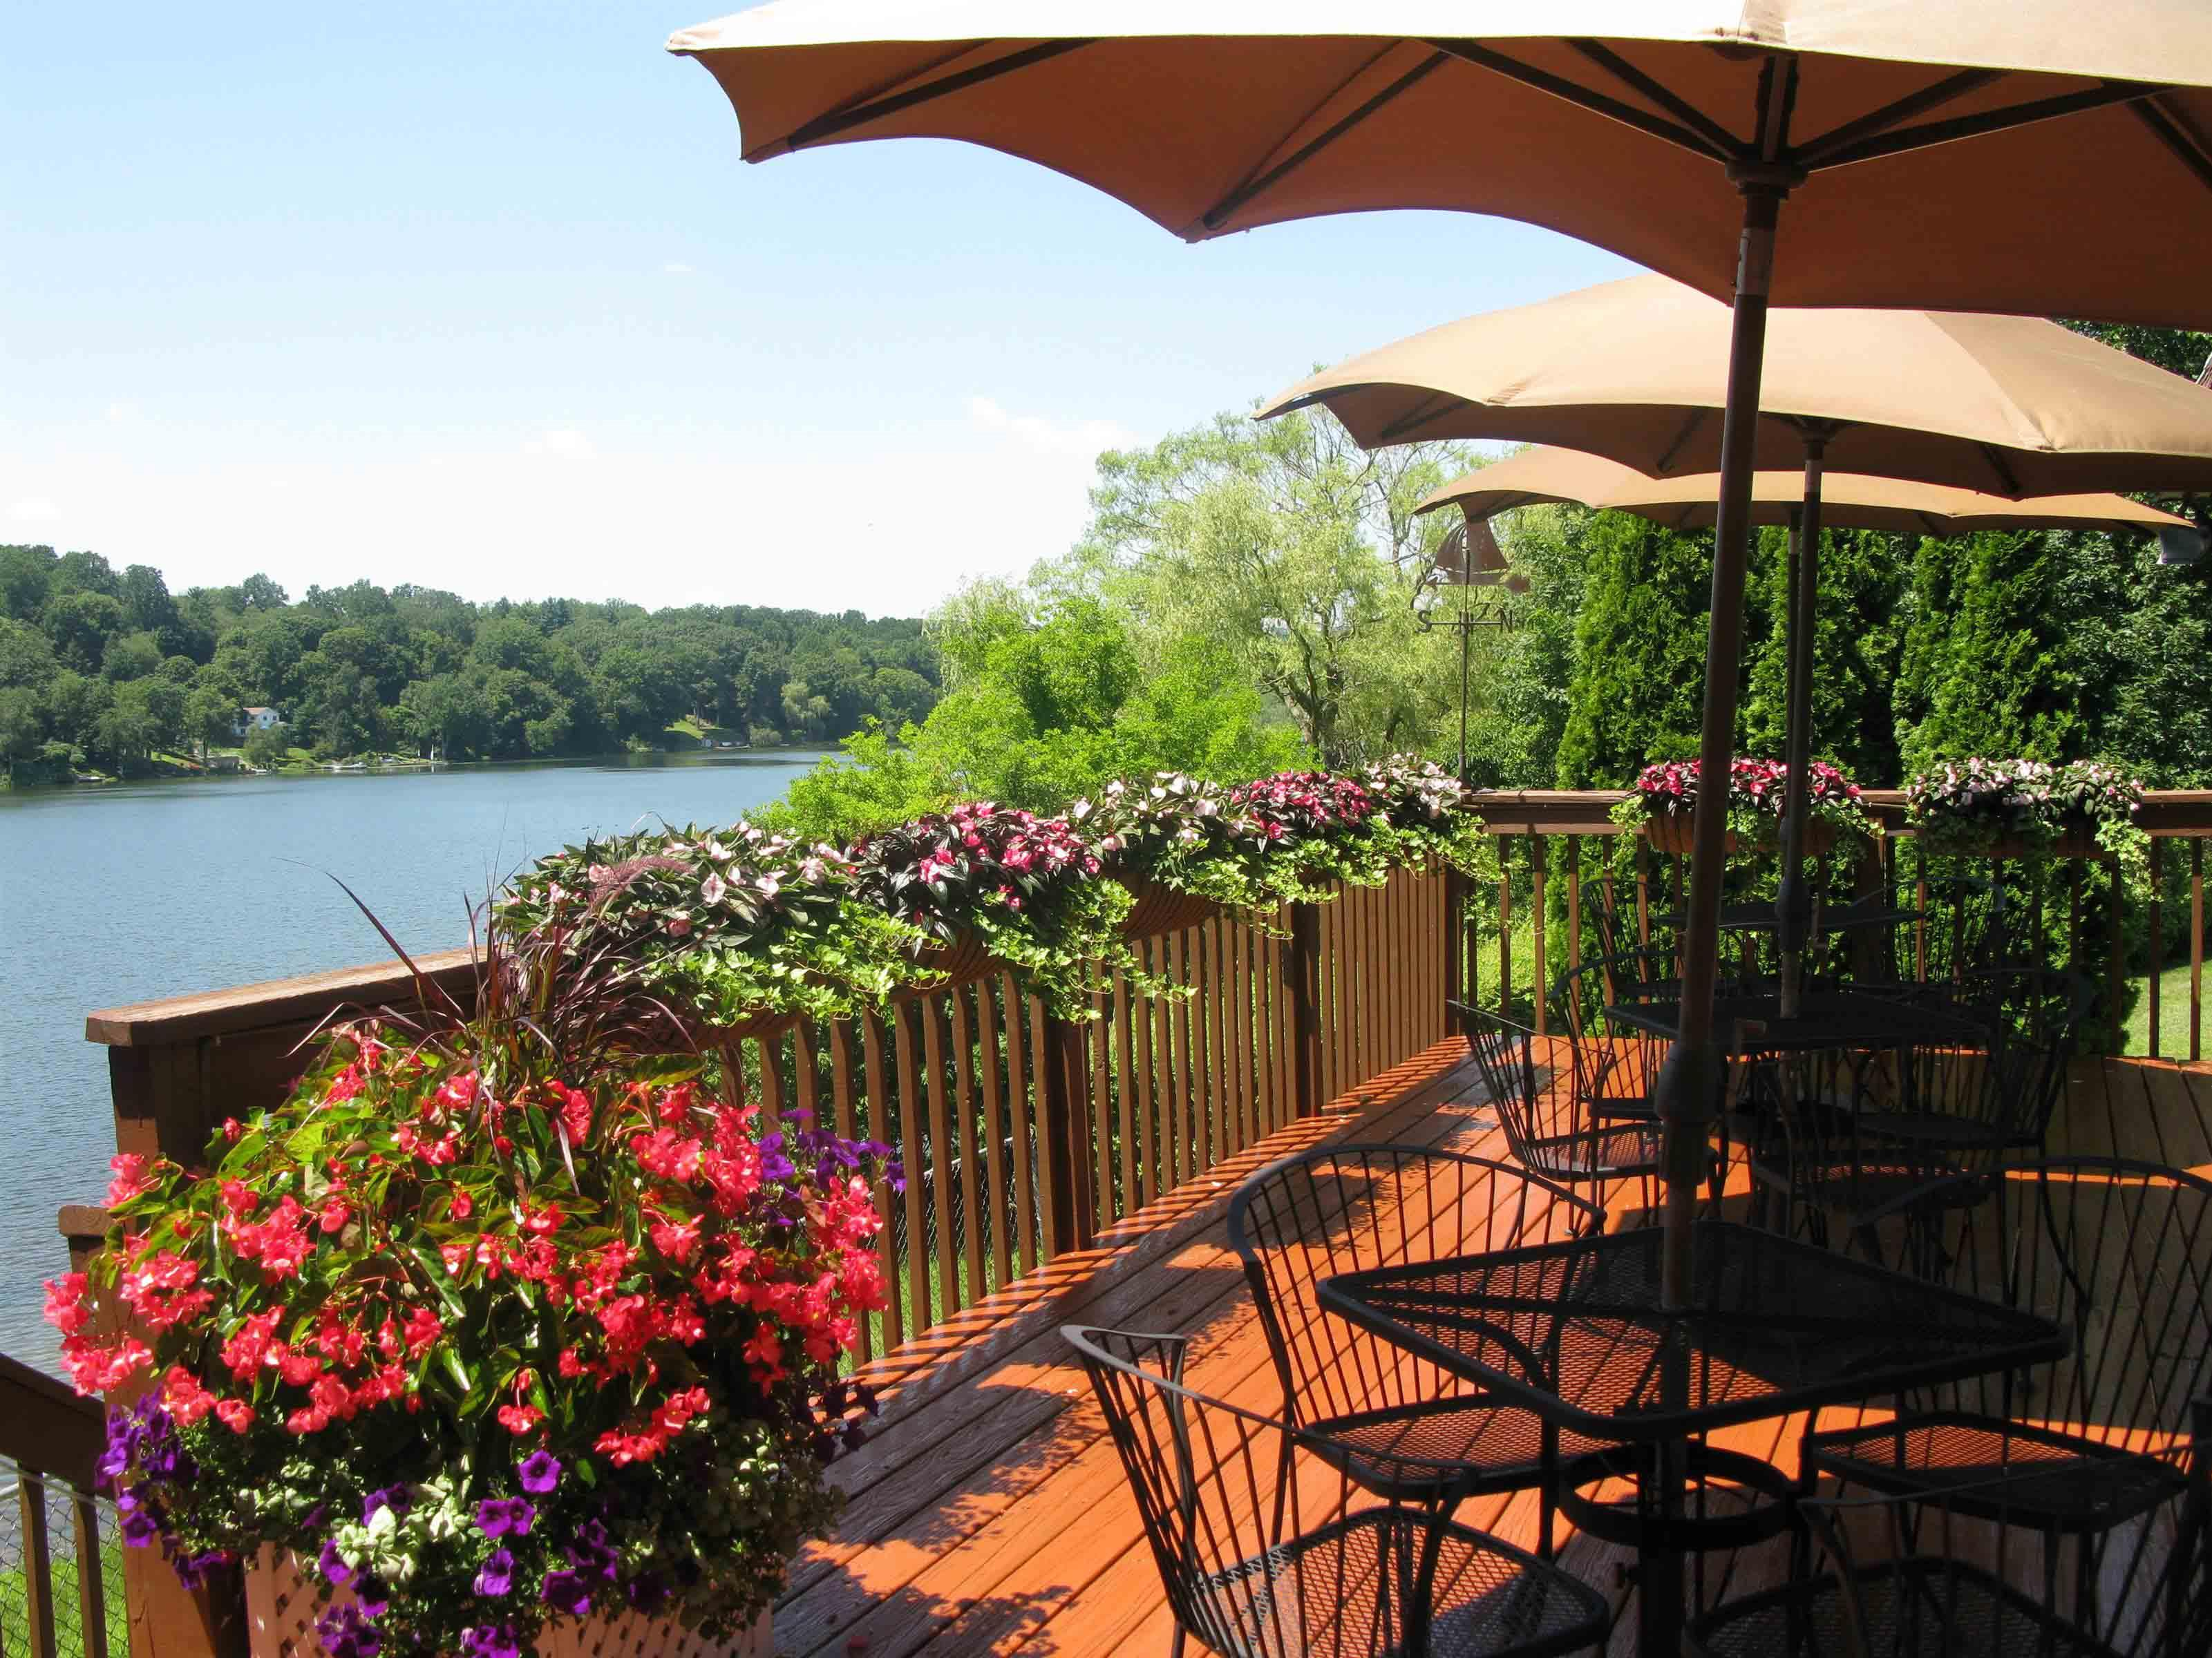 outdoor patio next to a lake with tables, chairs and flowers